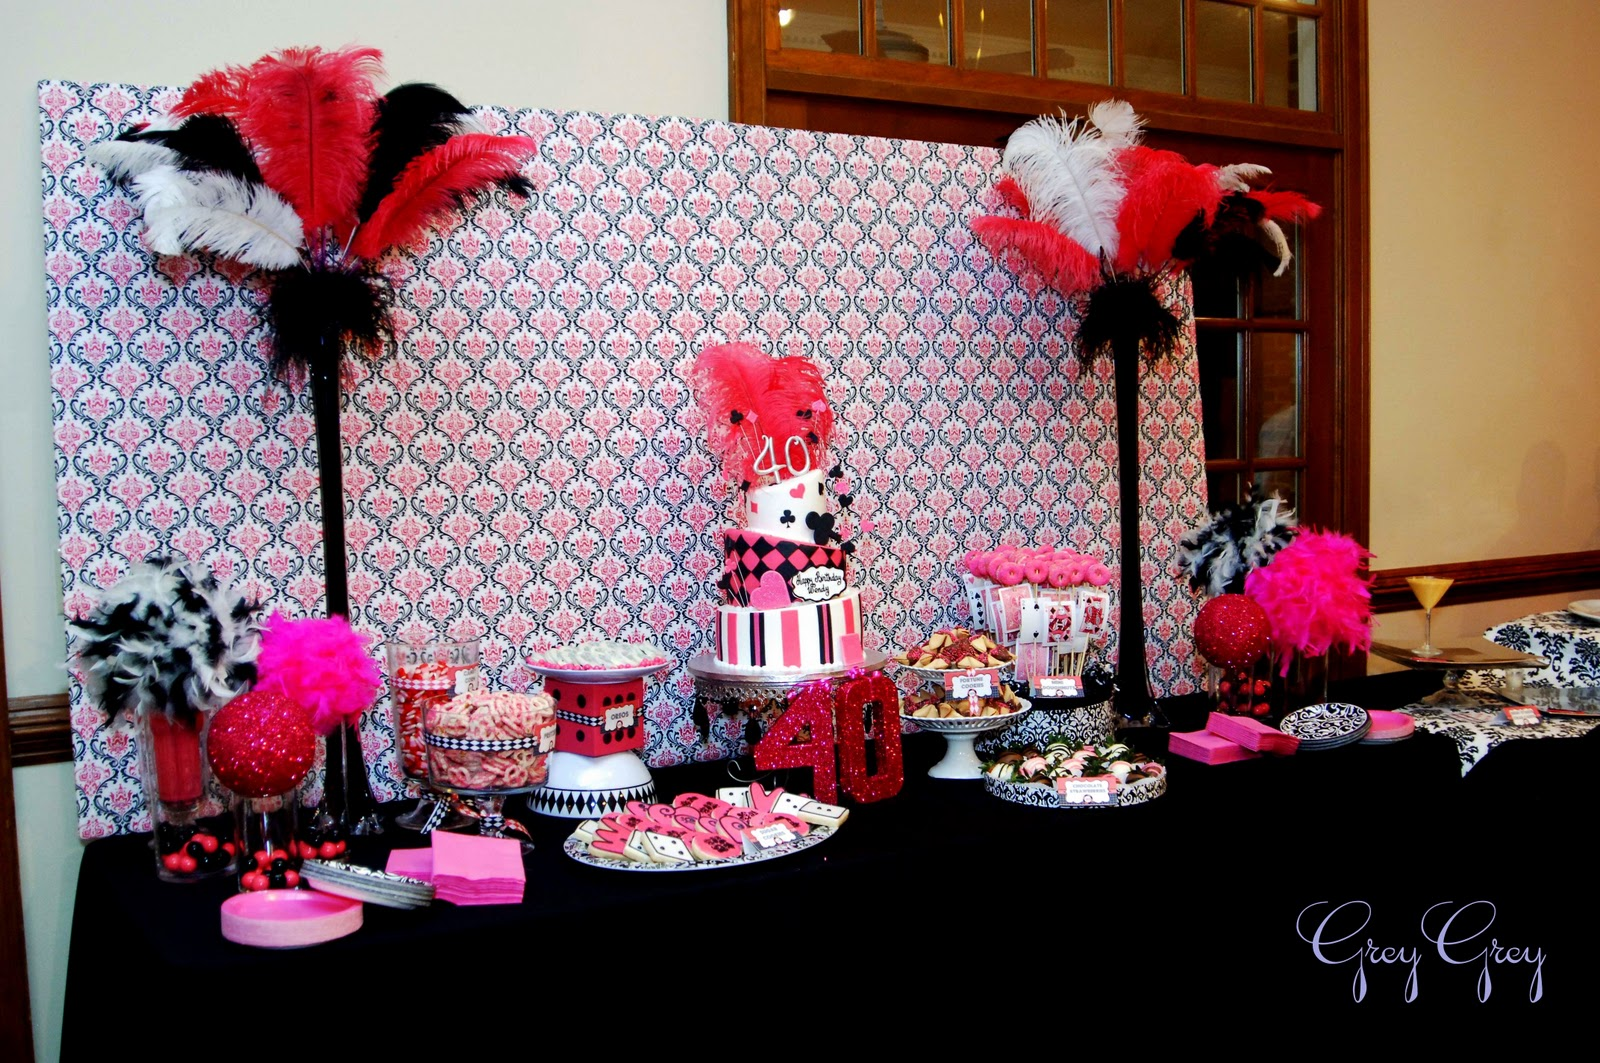 pink and black party decorations 1 desktop wallpaper. Black Bedroom Furniture Sets. Home Design Ideas